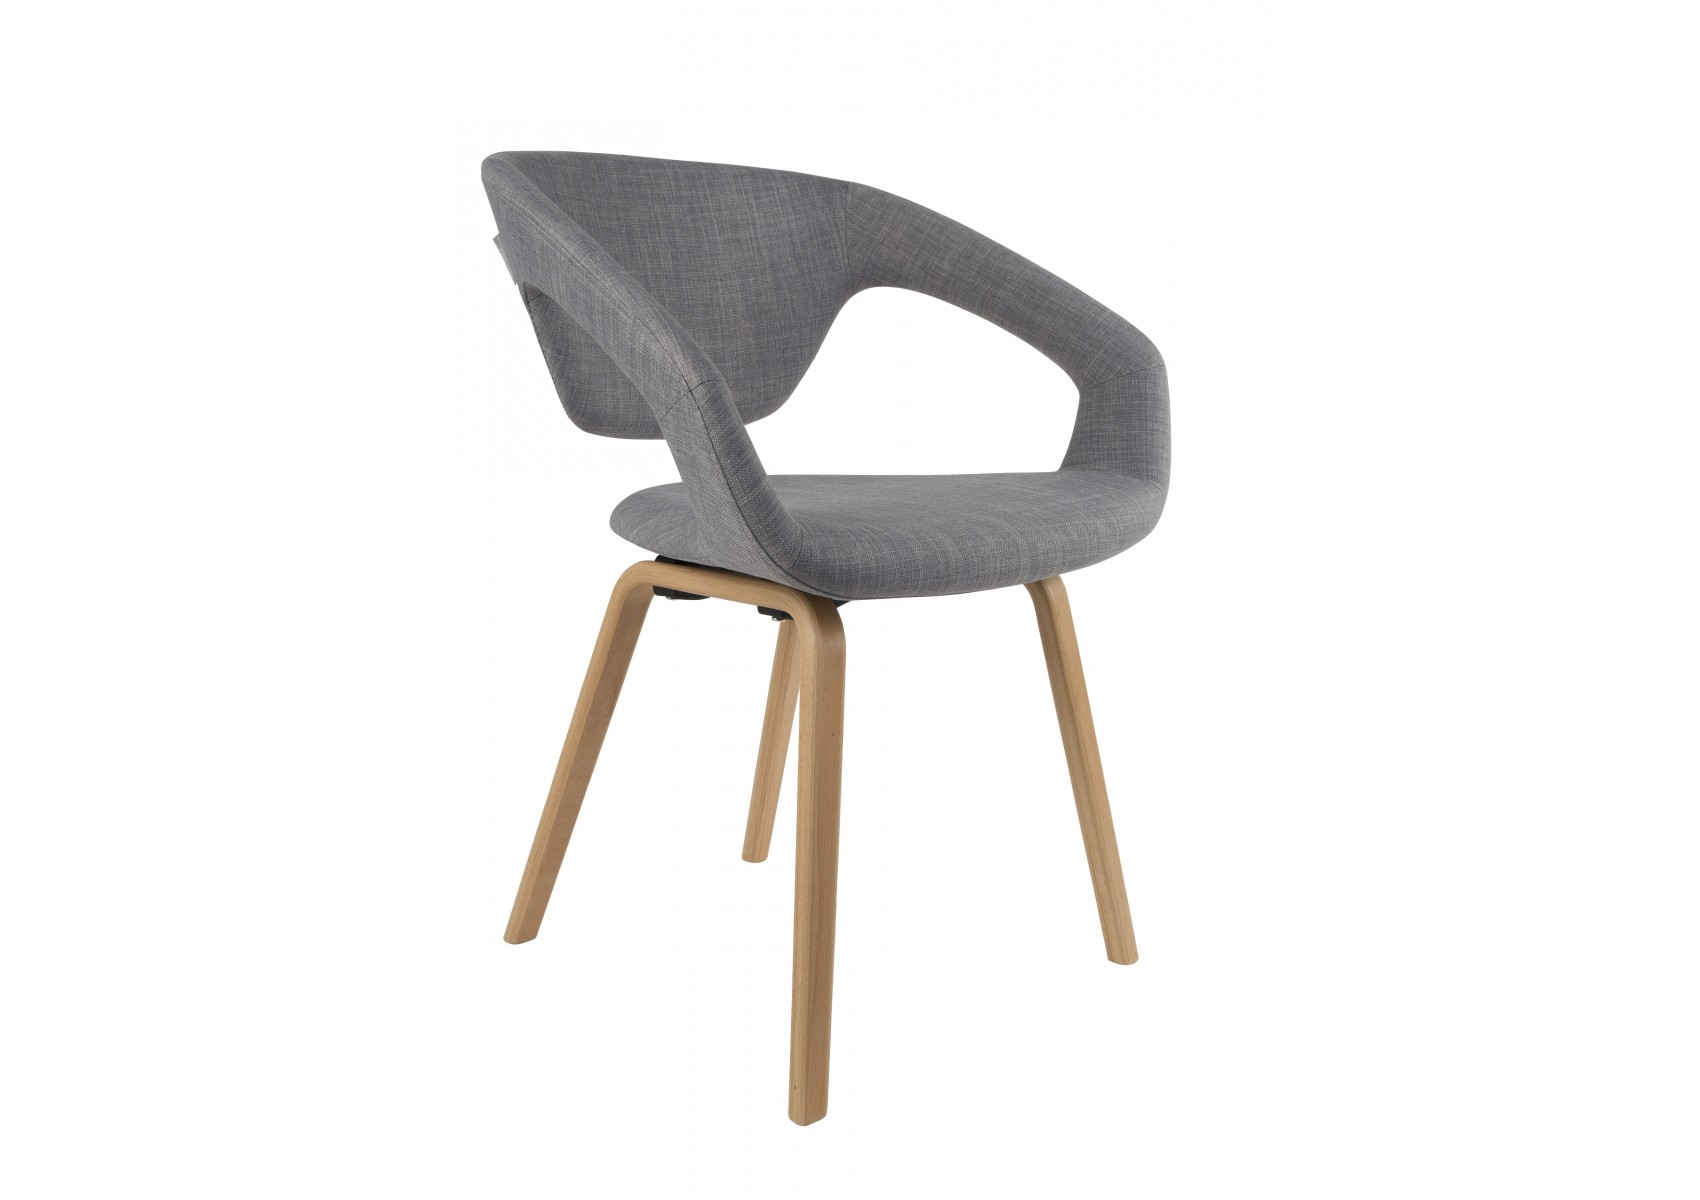 Chaise design flex back par zuiver boite design for Chaise designer